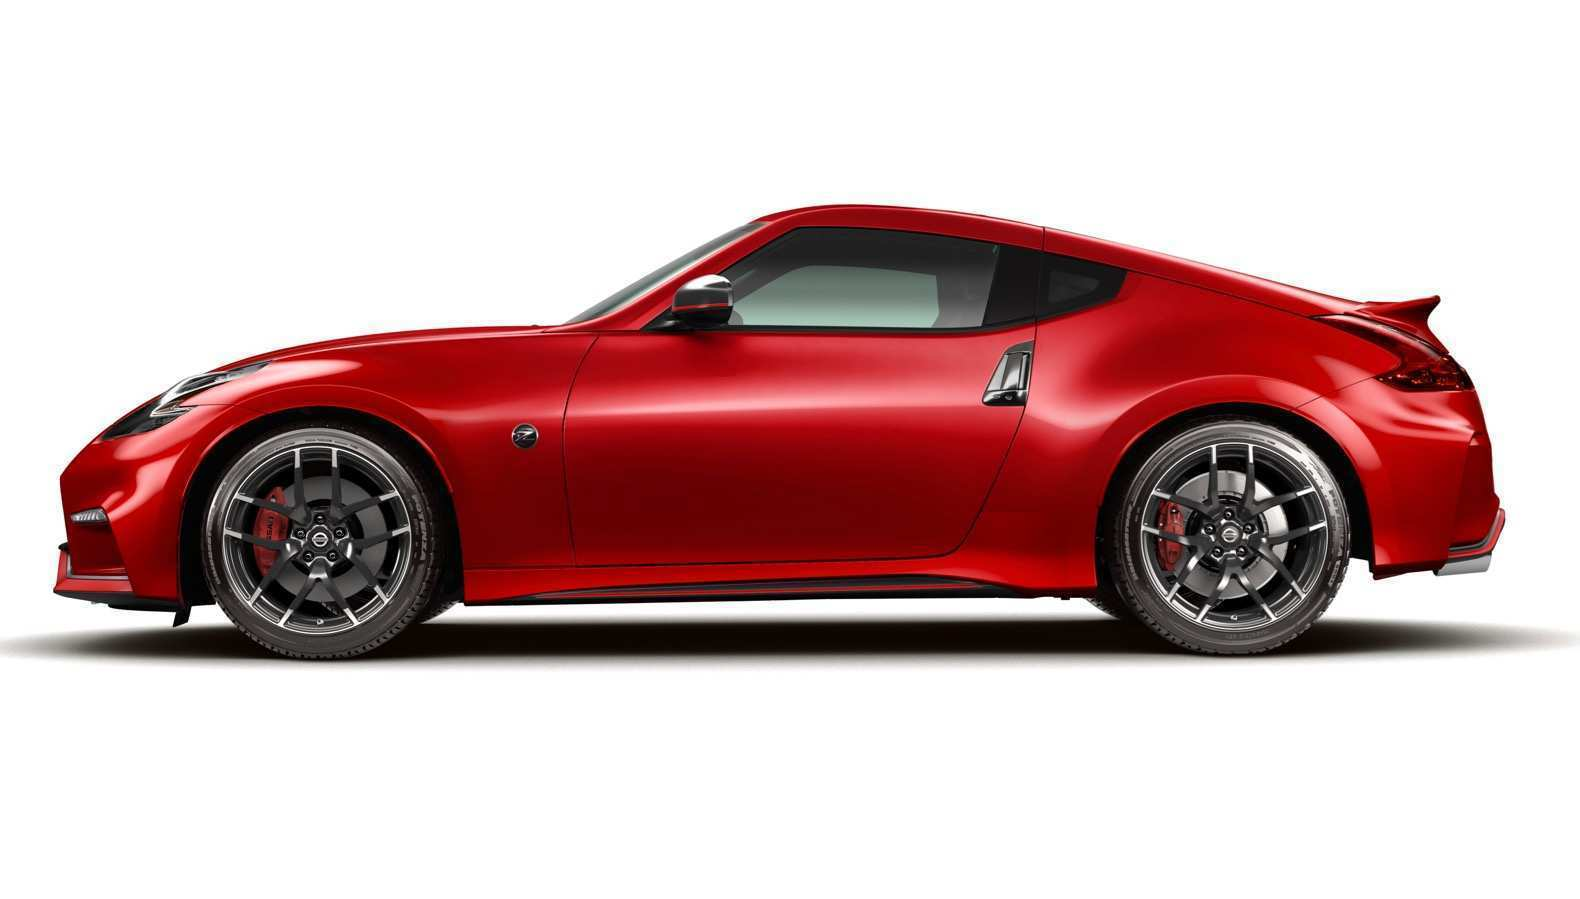 84 The Best 2019 Nissan Z Turbo Nismo New Concept